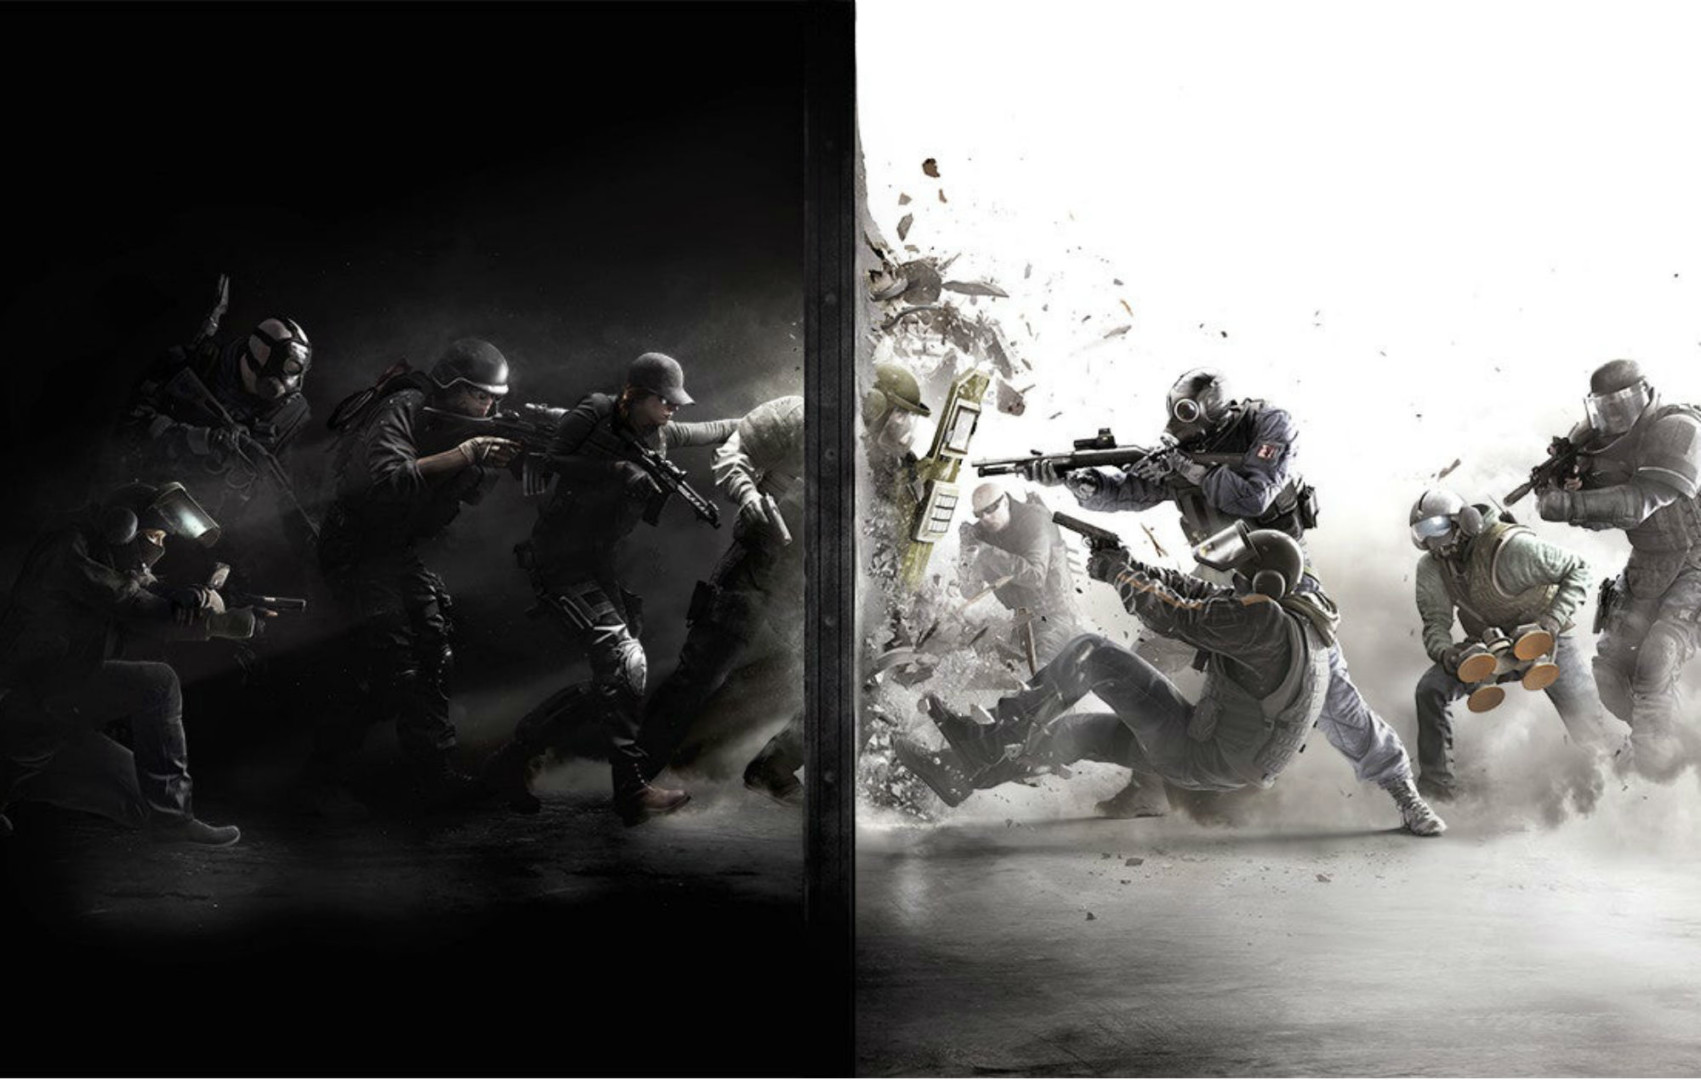 Rainbow-Six-Siege-will-let-you-unlock-Operators-as-part-of-the-Battle-Pass-2.jpg